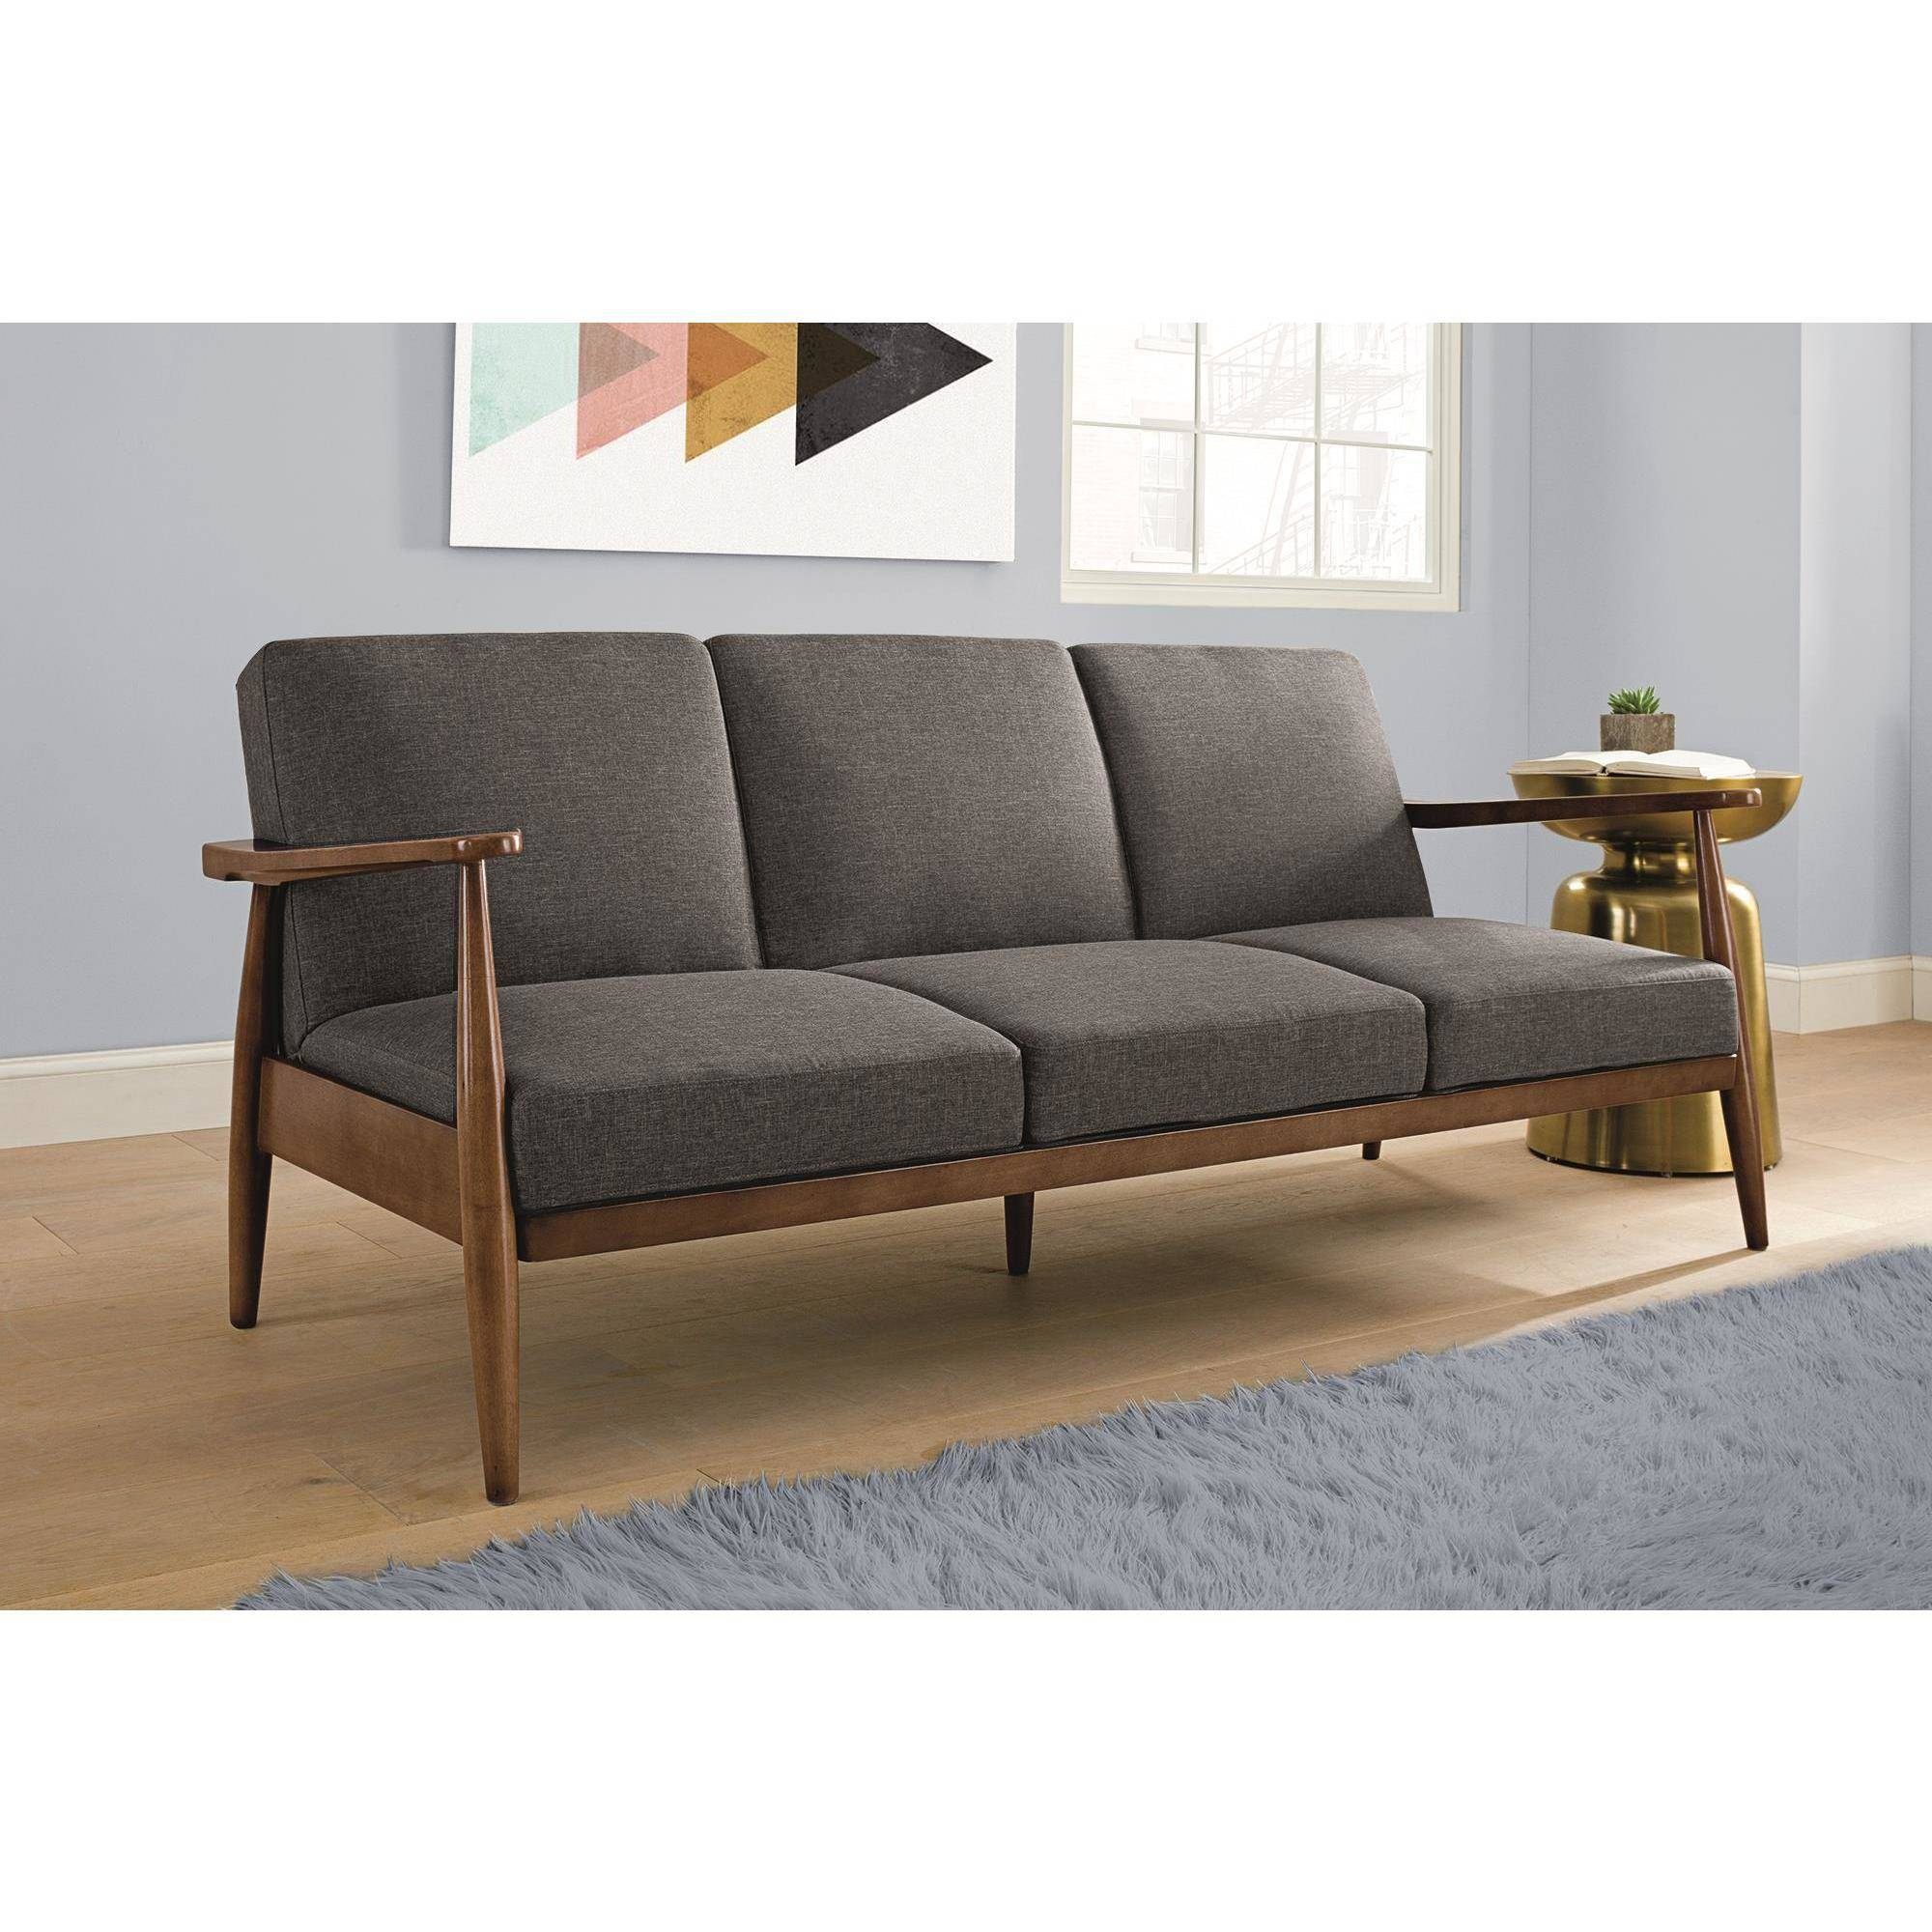 adriana frame moon product goodnight futon loveseat